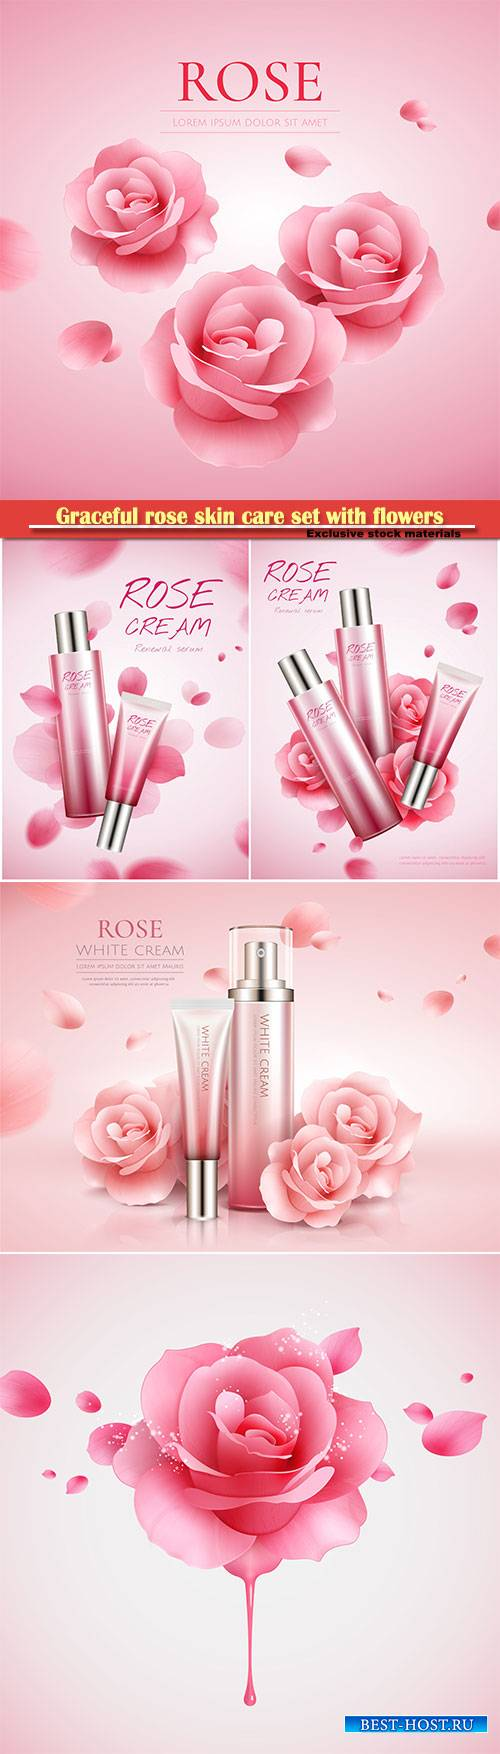 Graceful rose skin care set with flowers and flying petals in 3d illustrati ...